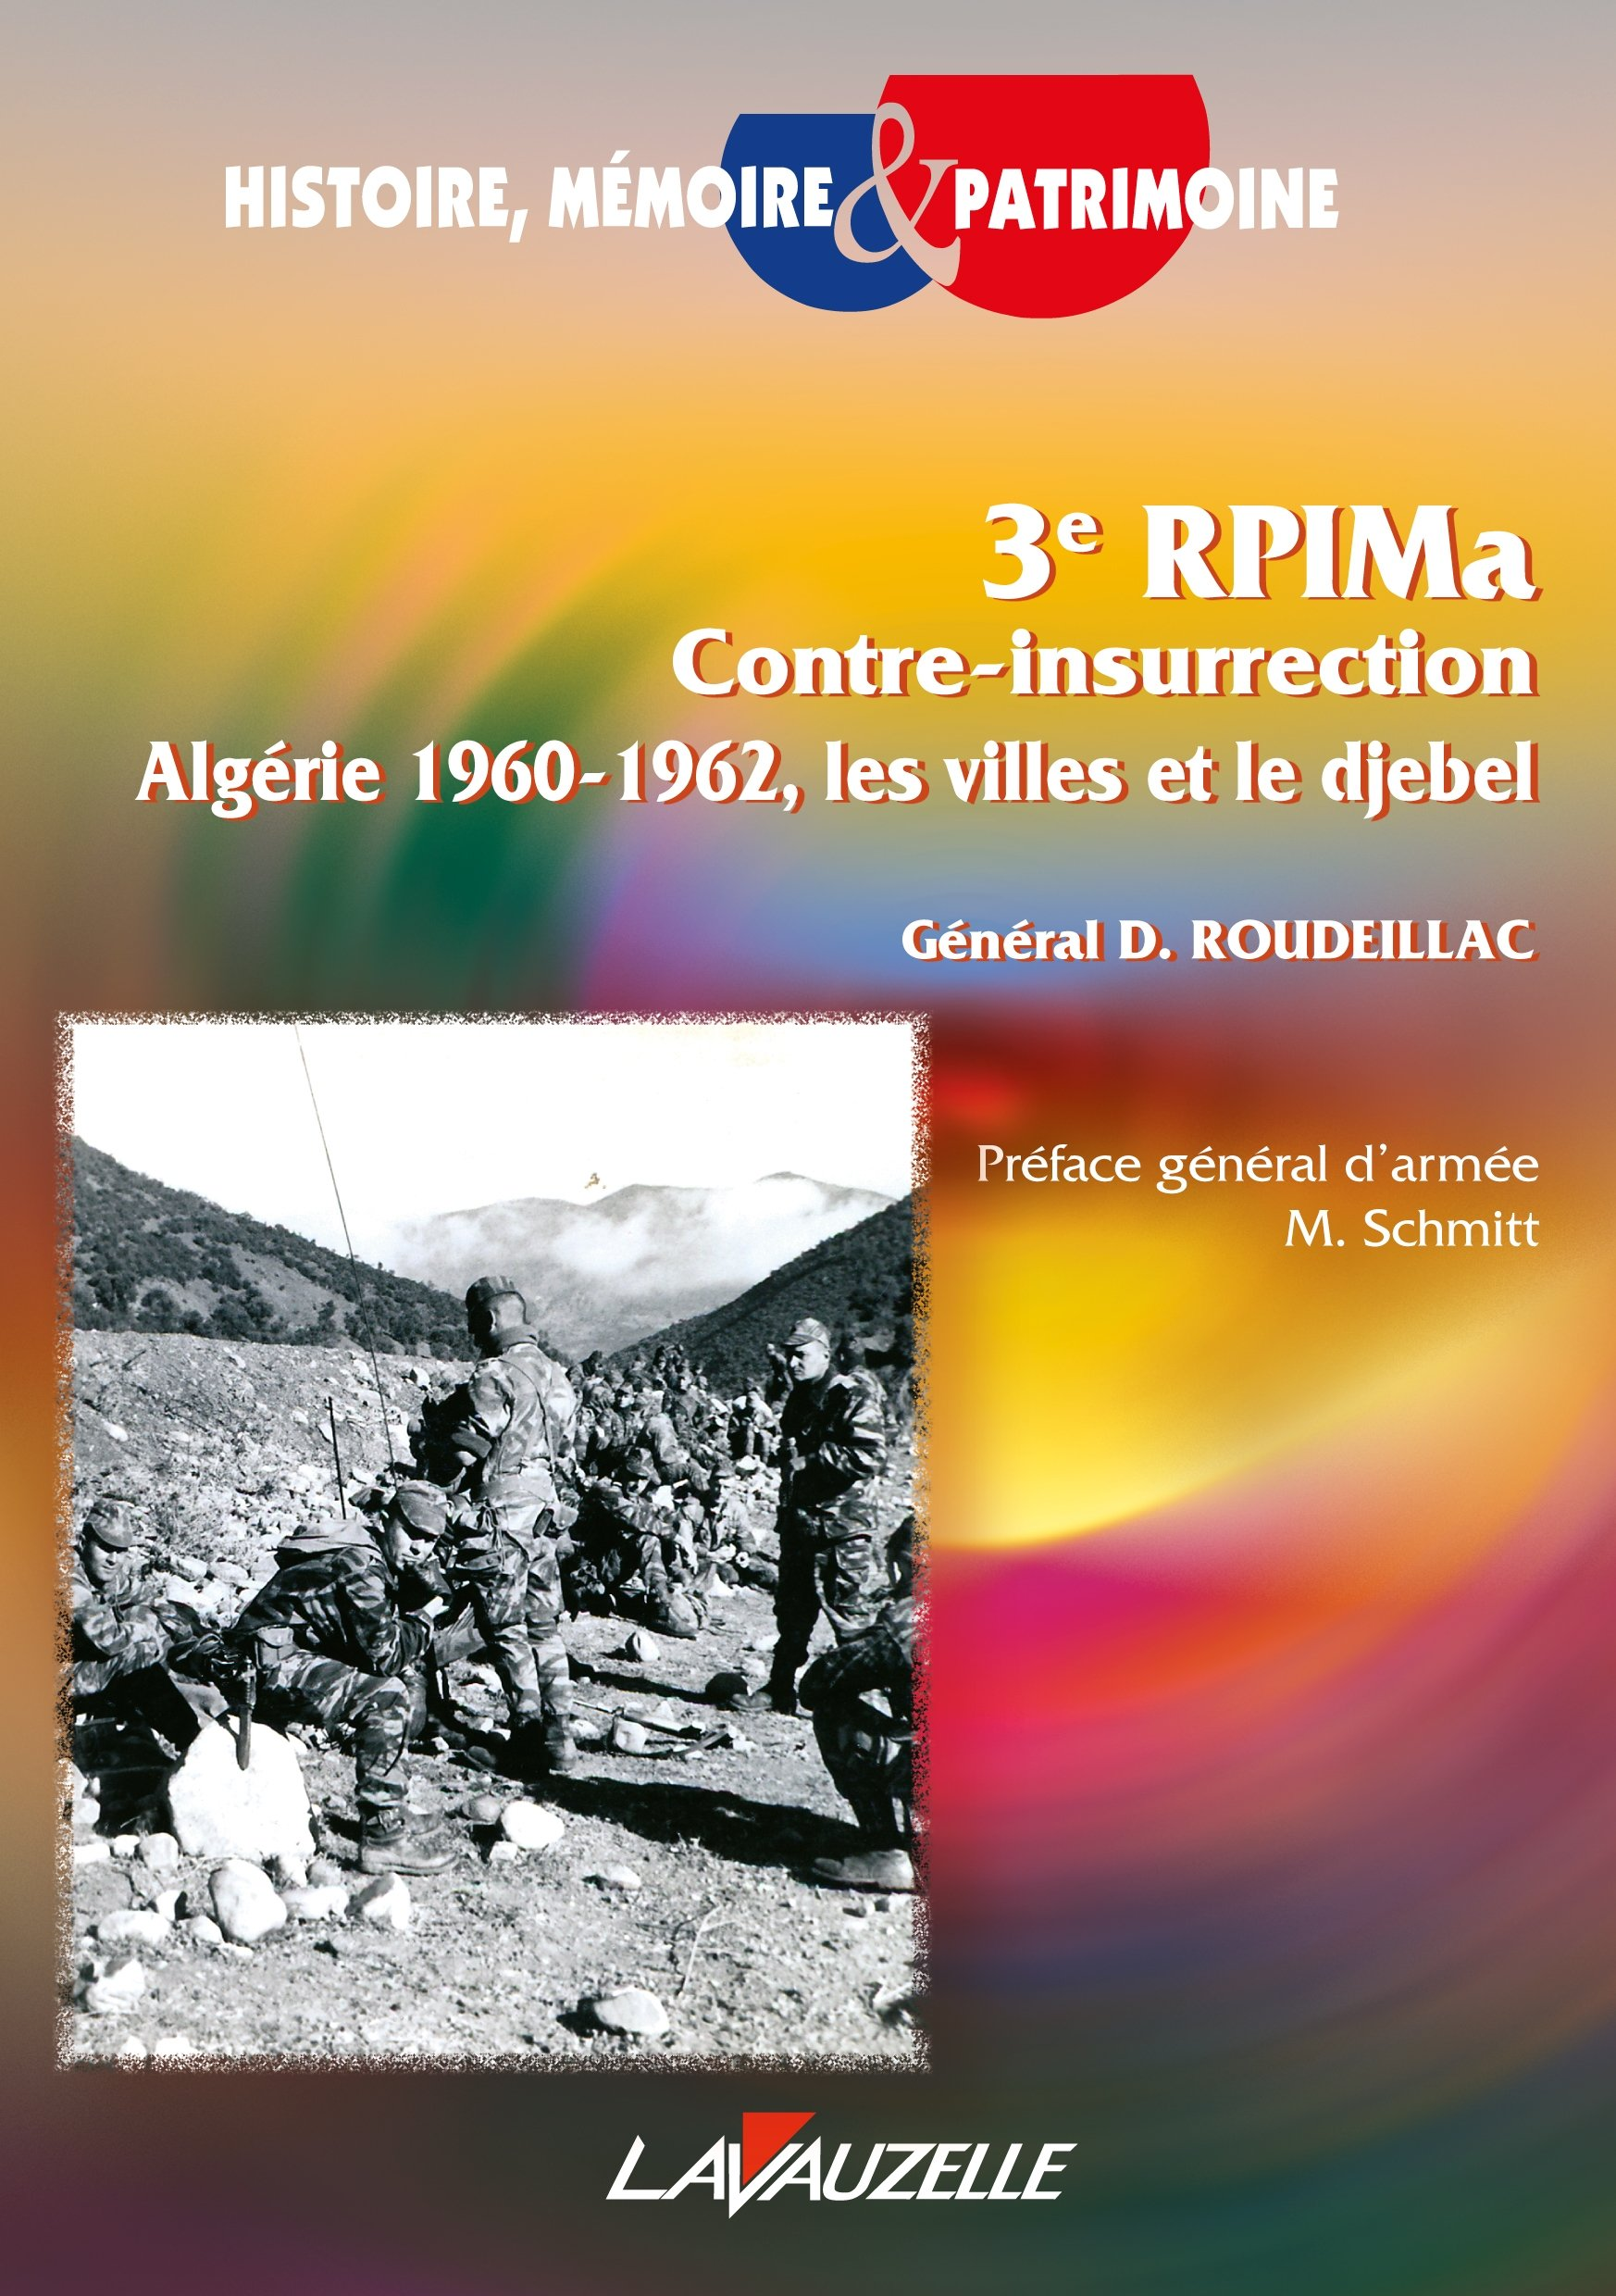 3e RPIMA contre-insurrection D Roudeillac